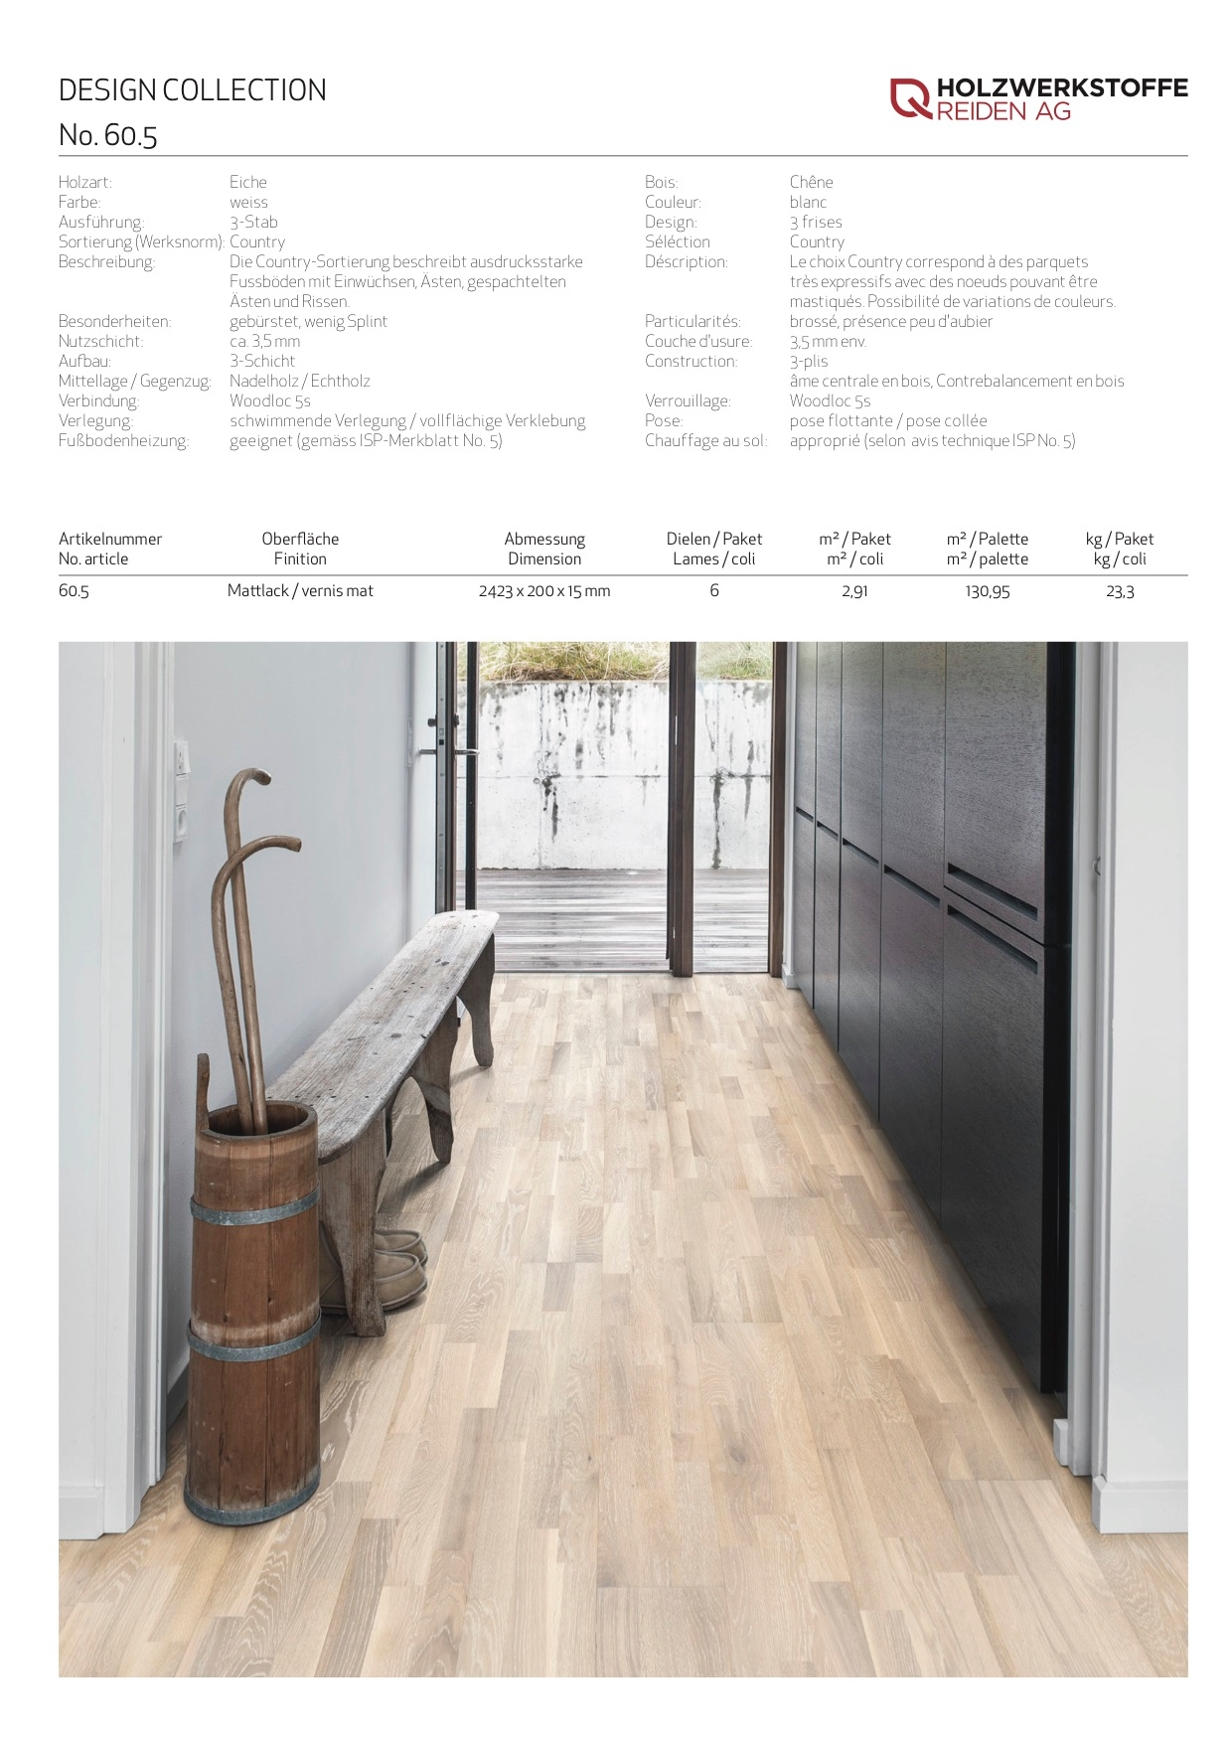 Design Eiche weiss 3-Stab country